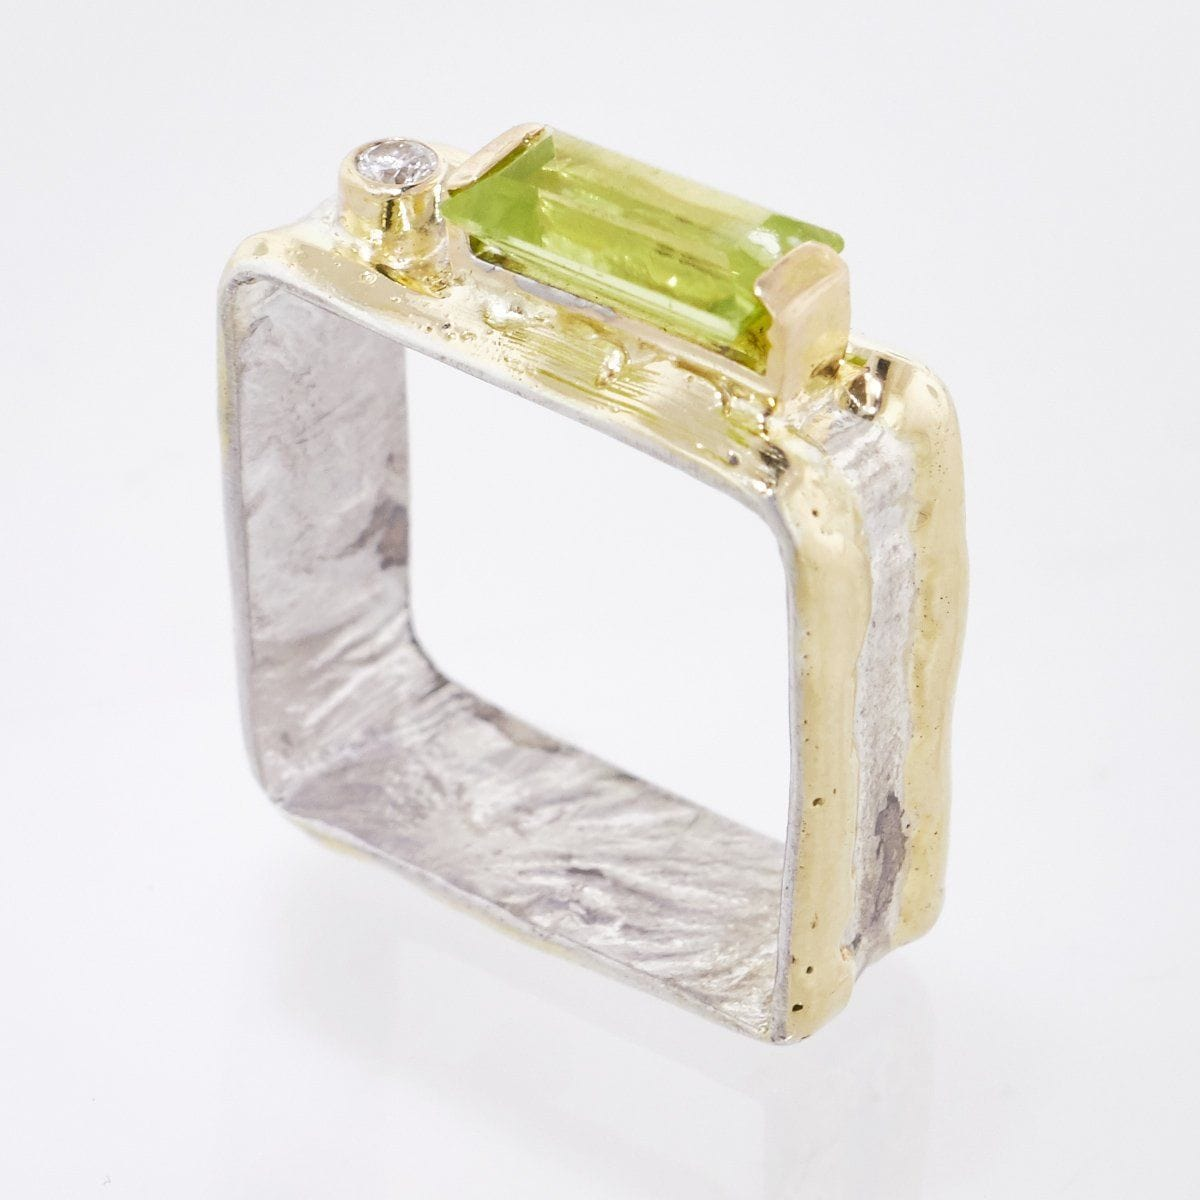 14K Gold & Crystalline Silver Peridot & Diamond Ring - 33264-Fusion Designs-Renee Taylor Gallery